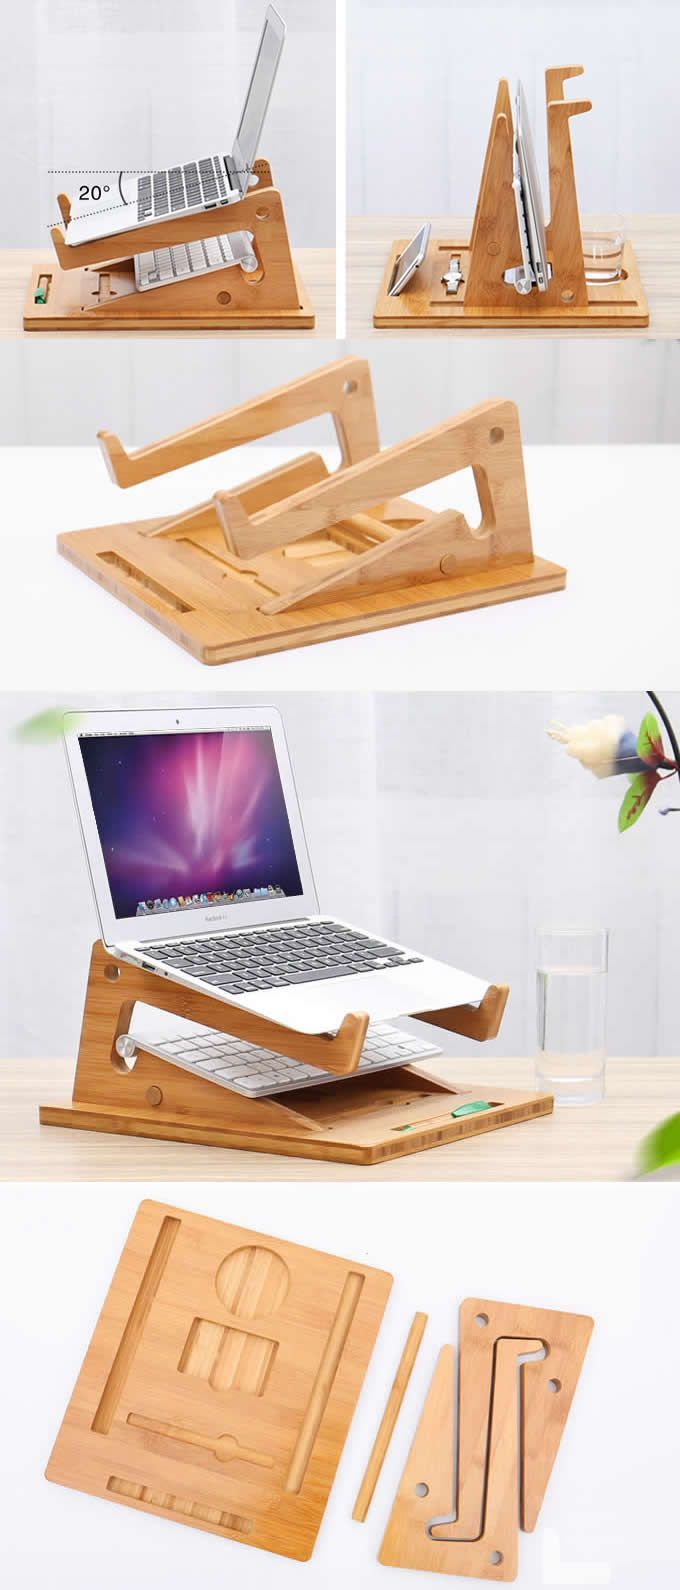 Macbook Air Pro Bamboo Desktop Stand Holder Office Desk Organizer Base For Tablet Laptop Desk Organization Diy Diy Desk Desk Organization Office